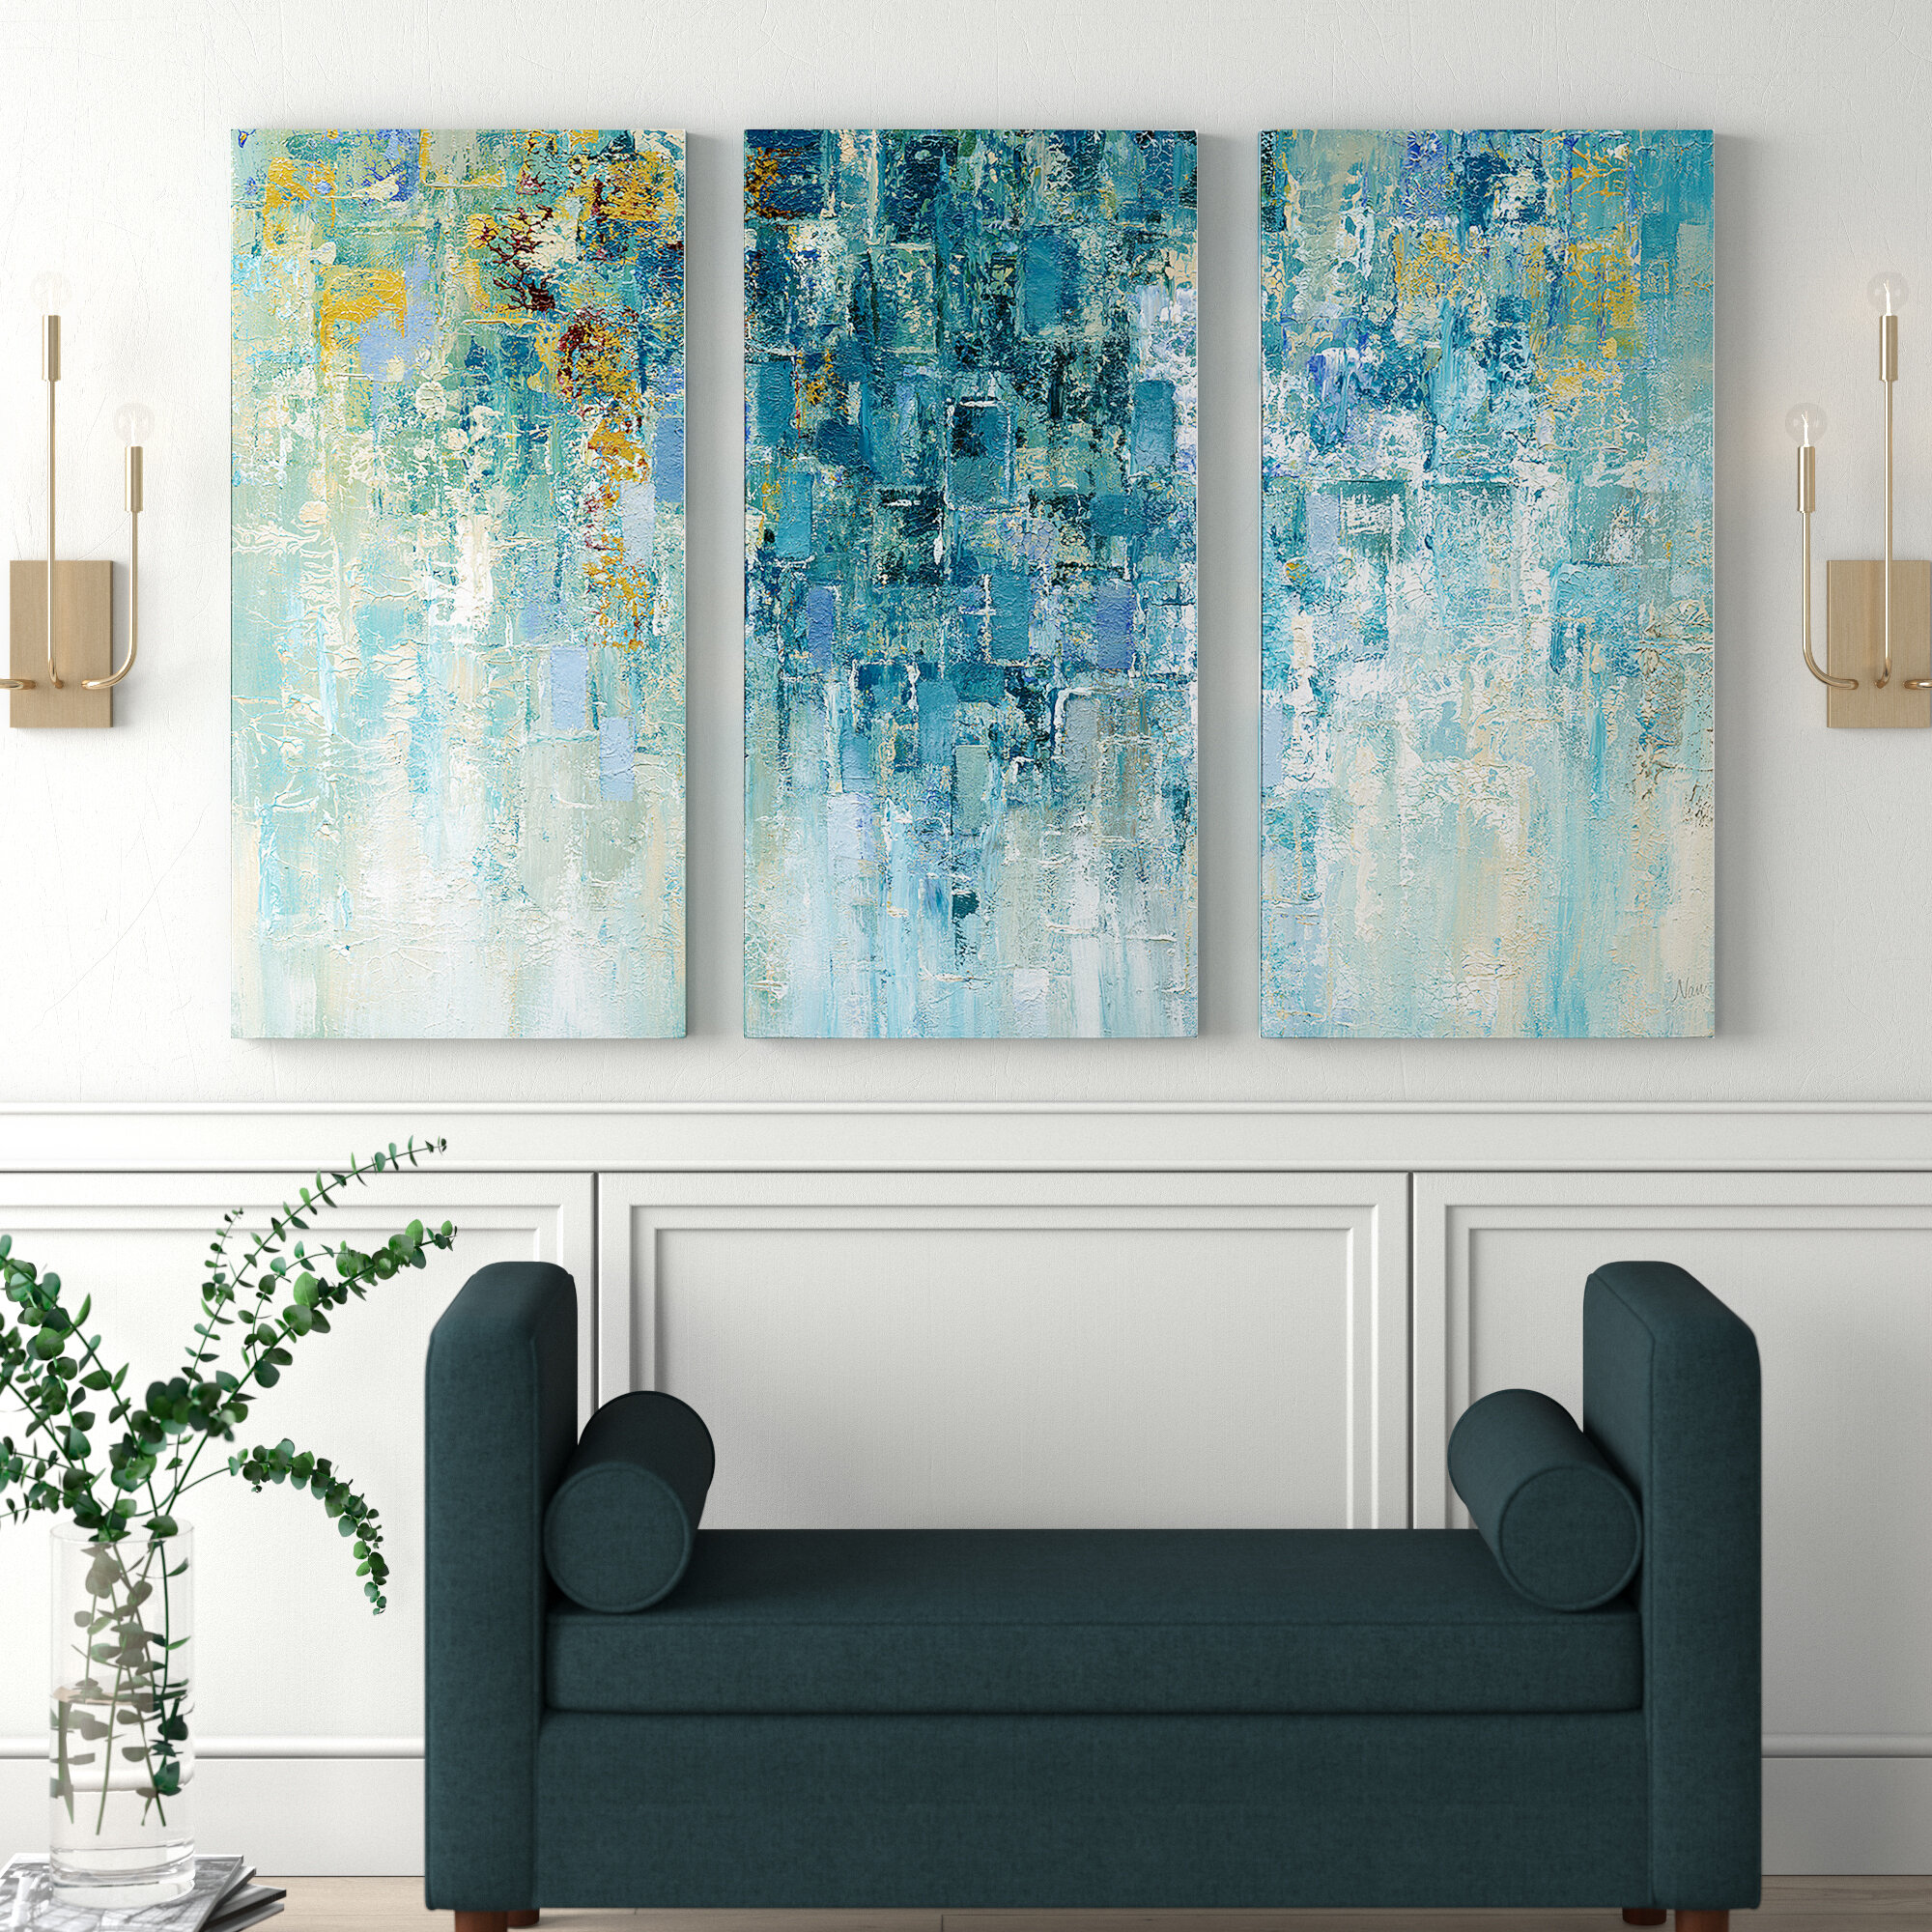 I Love The Rain Acrylic Painting Print Multi Piece Image On Gallery Wrapped Canvas